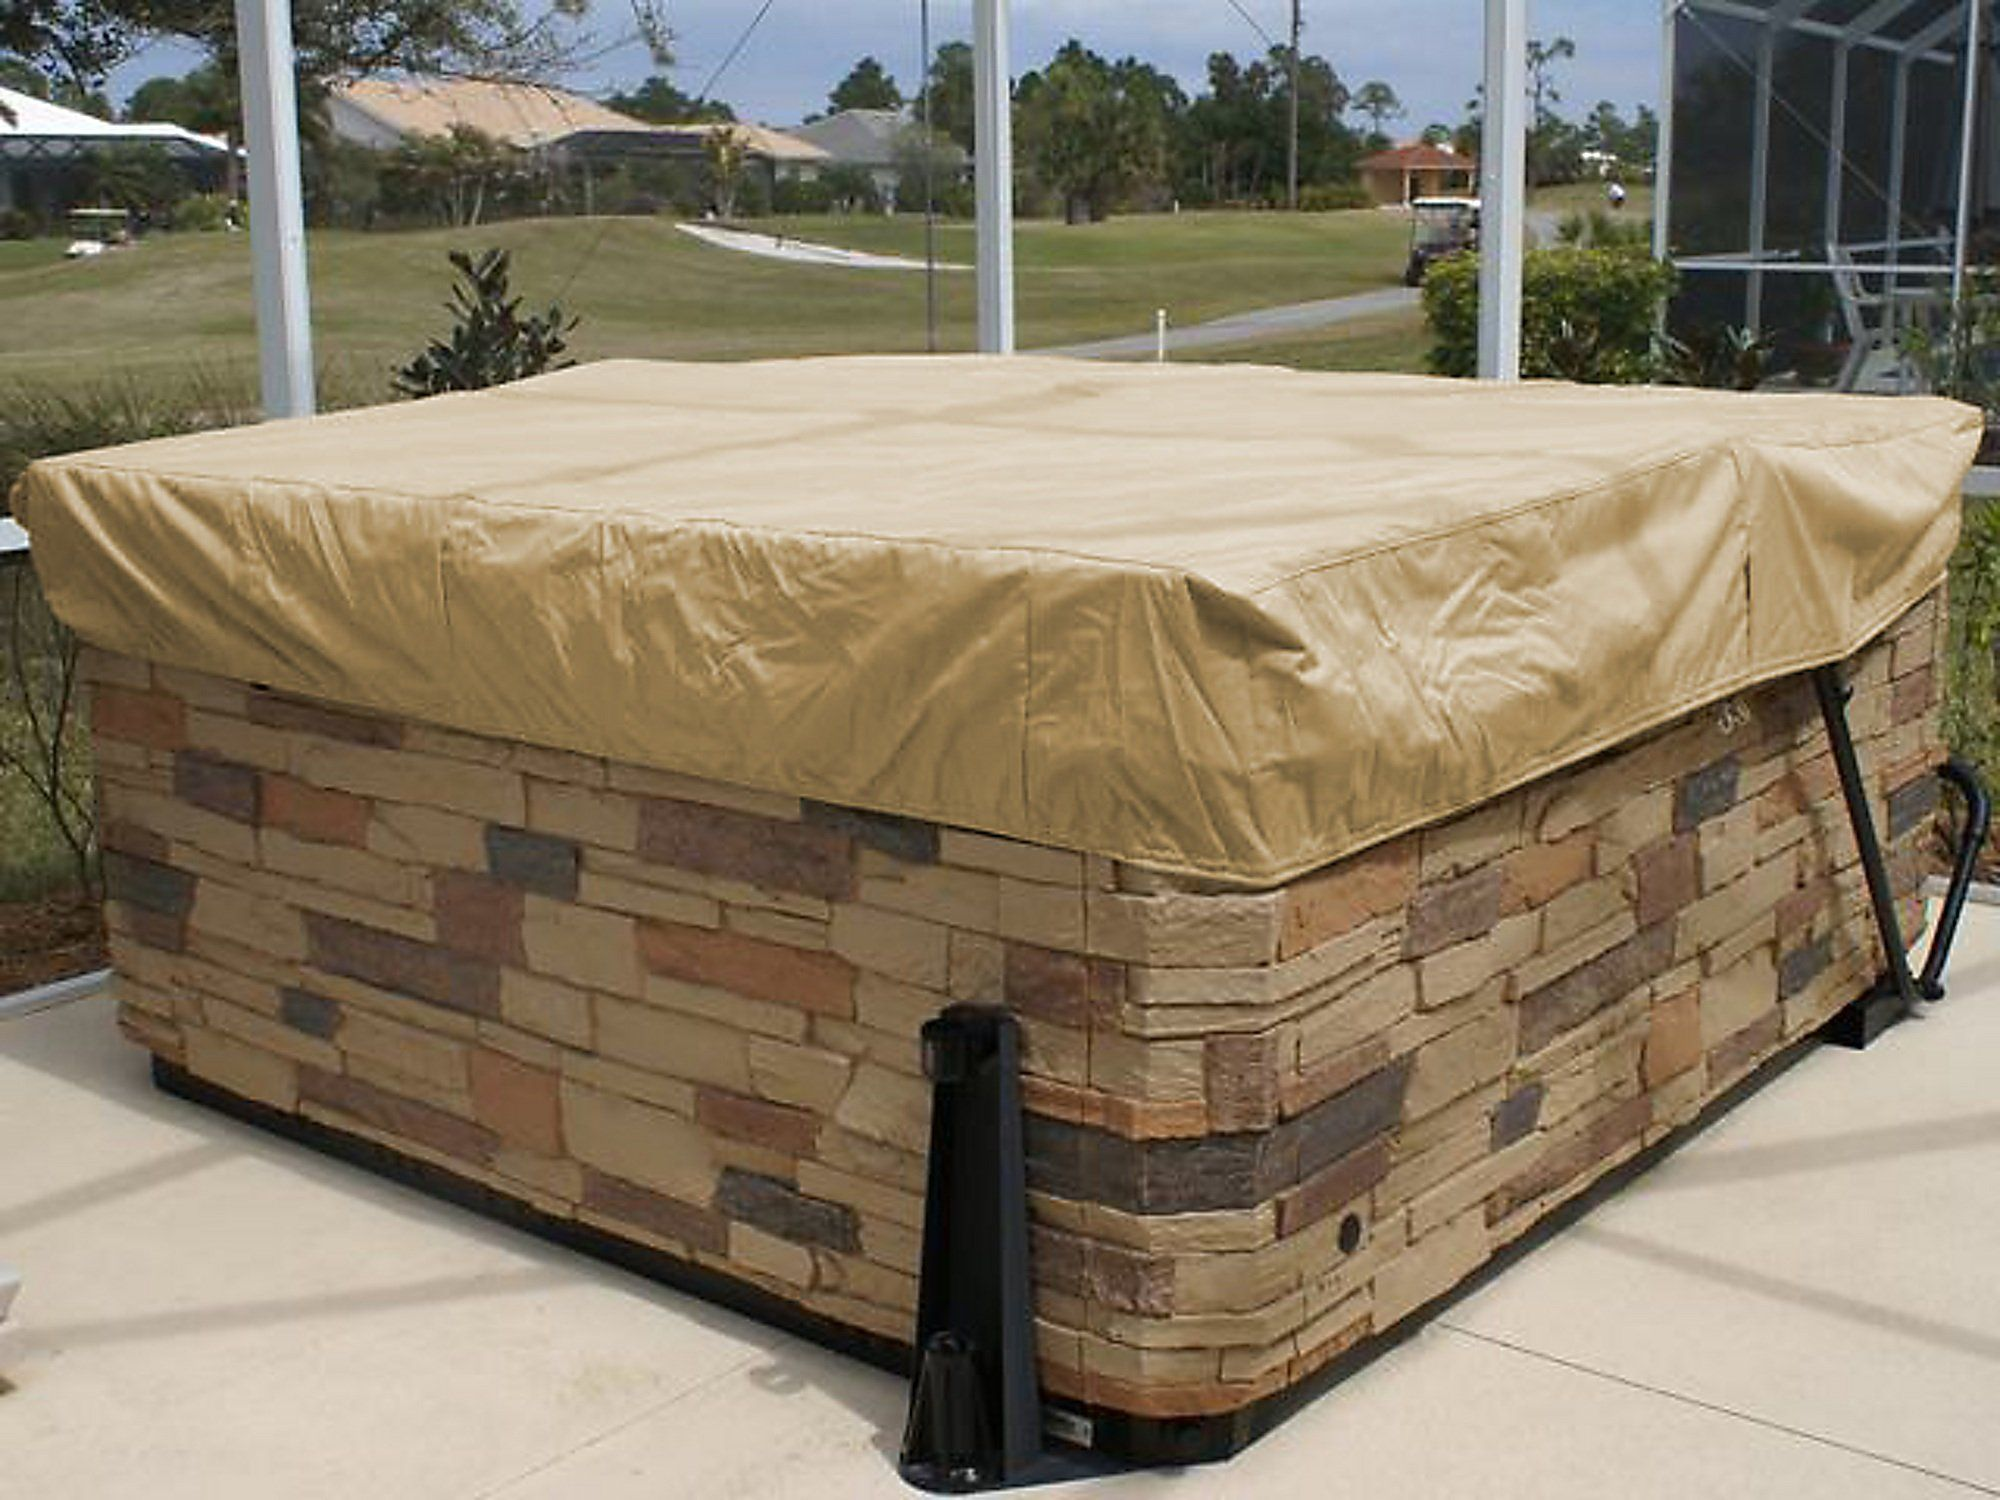 Covermates Outdoor Furniture Covers In Amazoncom Covermates Square Hot Tub Cover Cap 92w 92d 14h